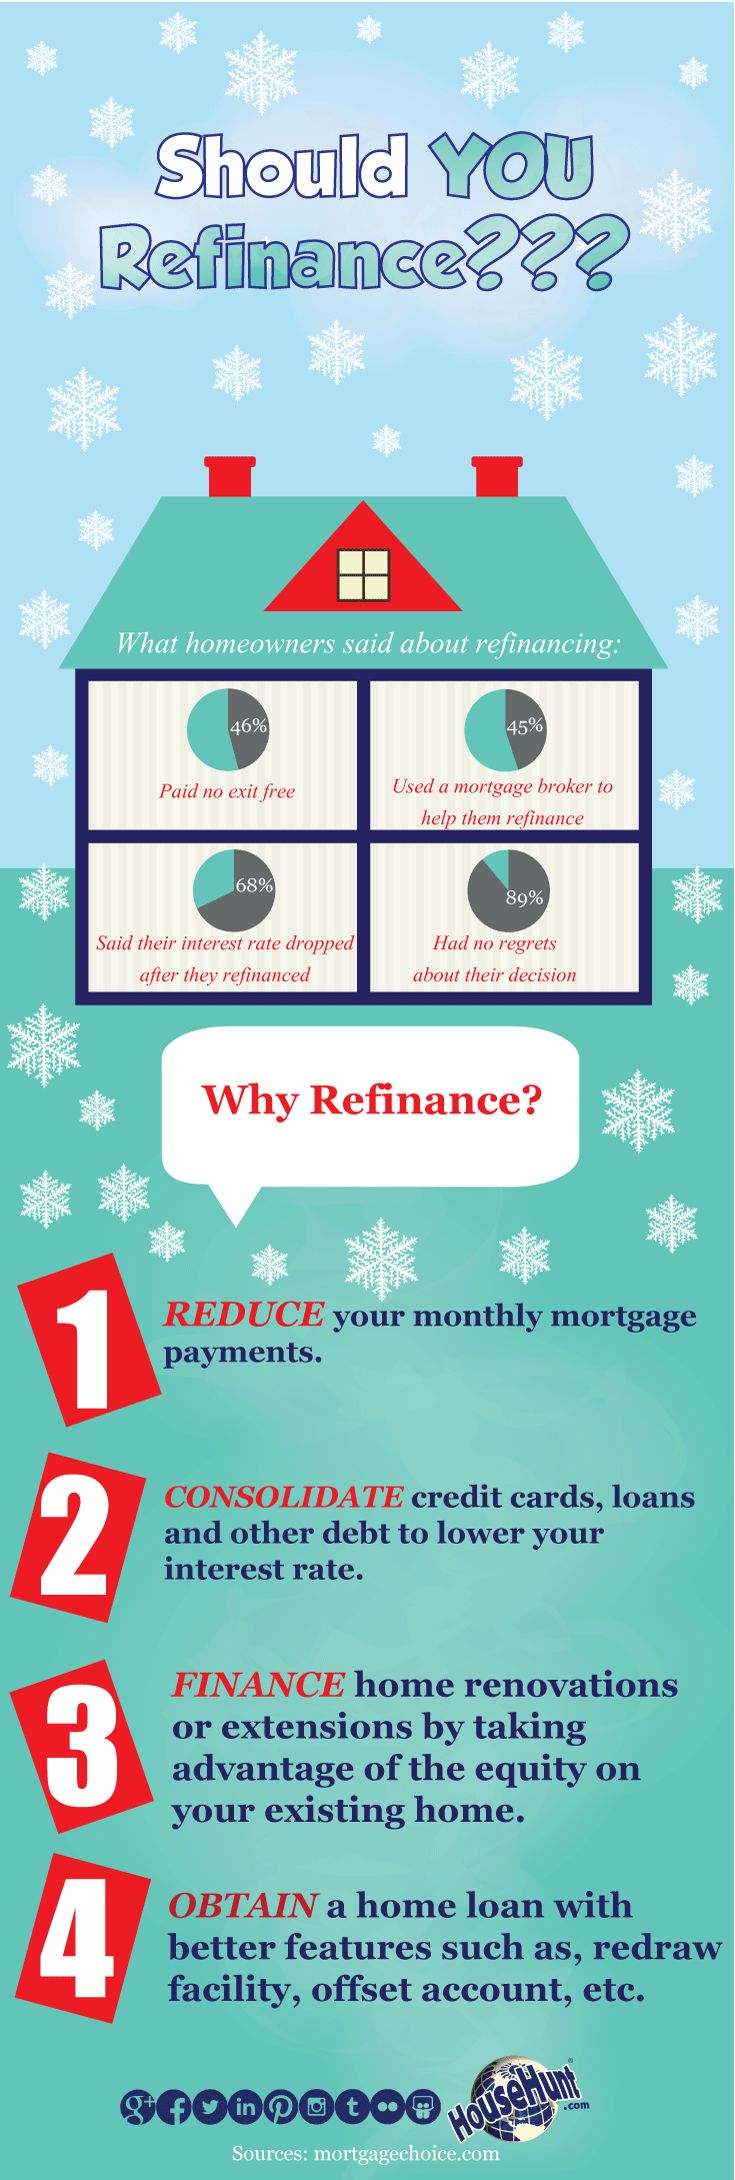 Mortgage Quote 7 Best Images About Refinancing Your Home On Pinterest  Savemoney